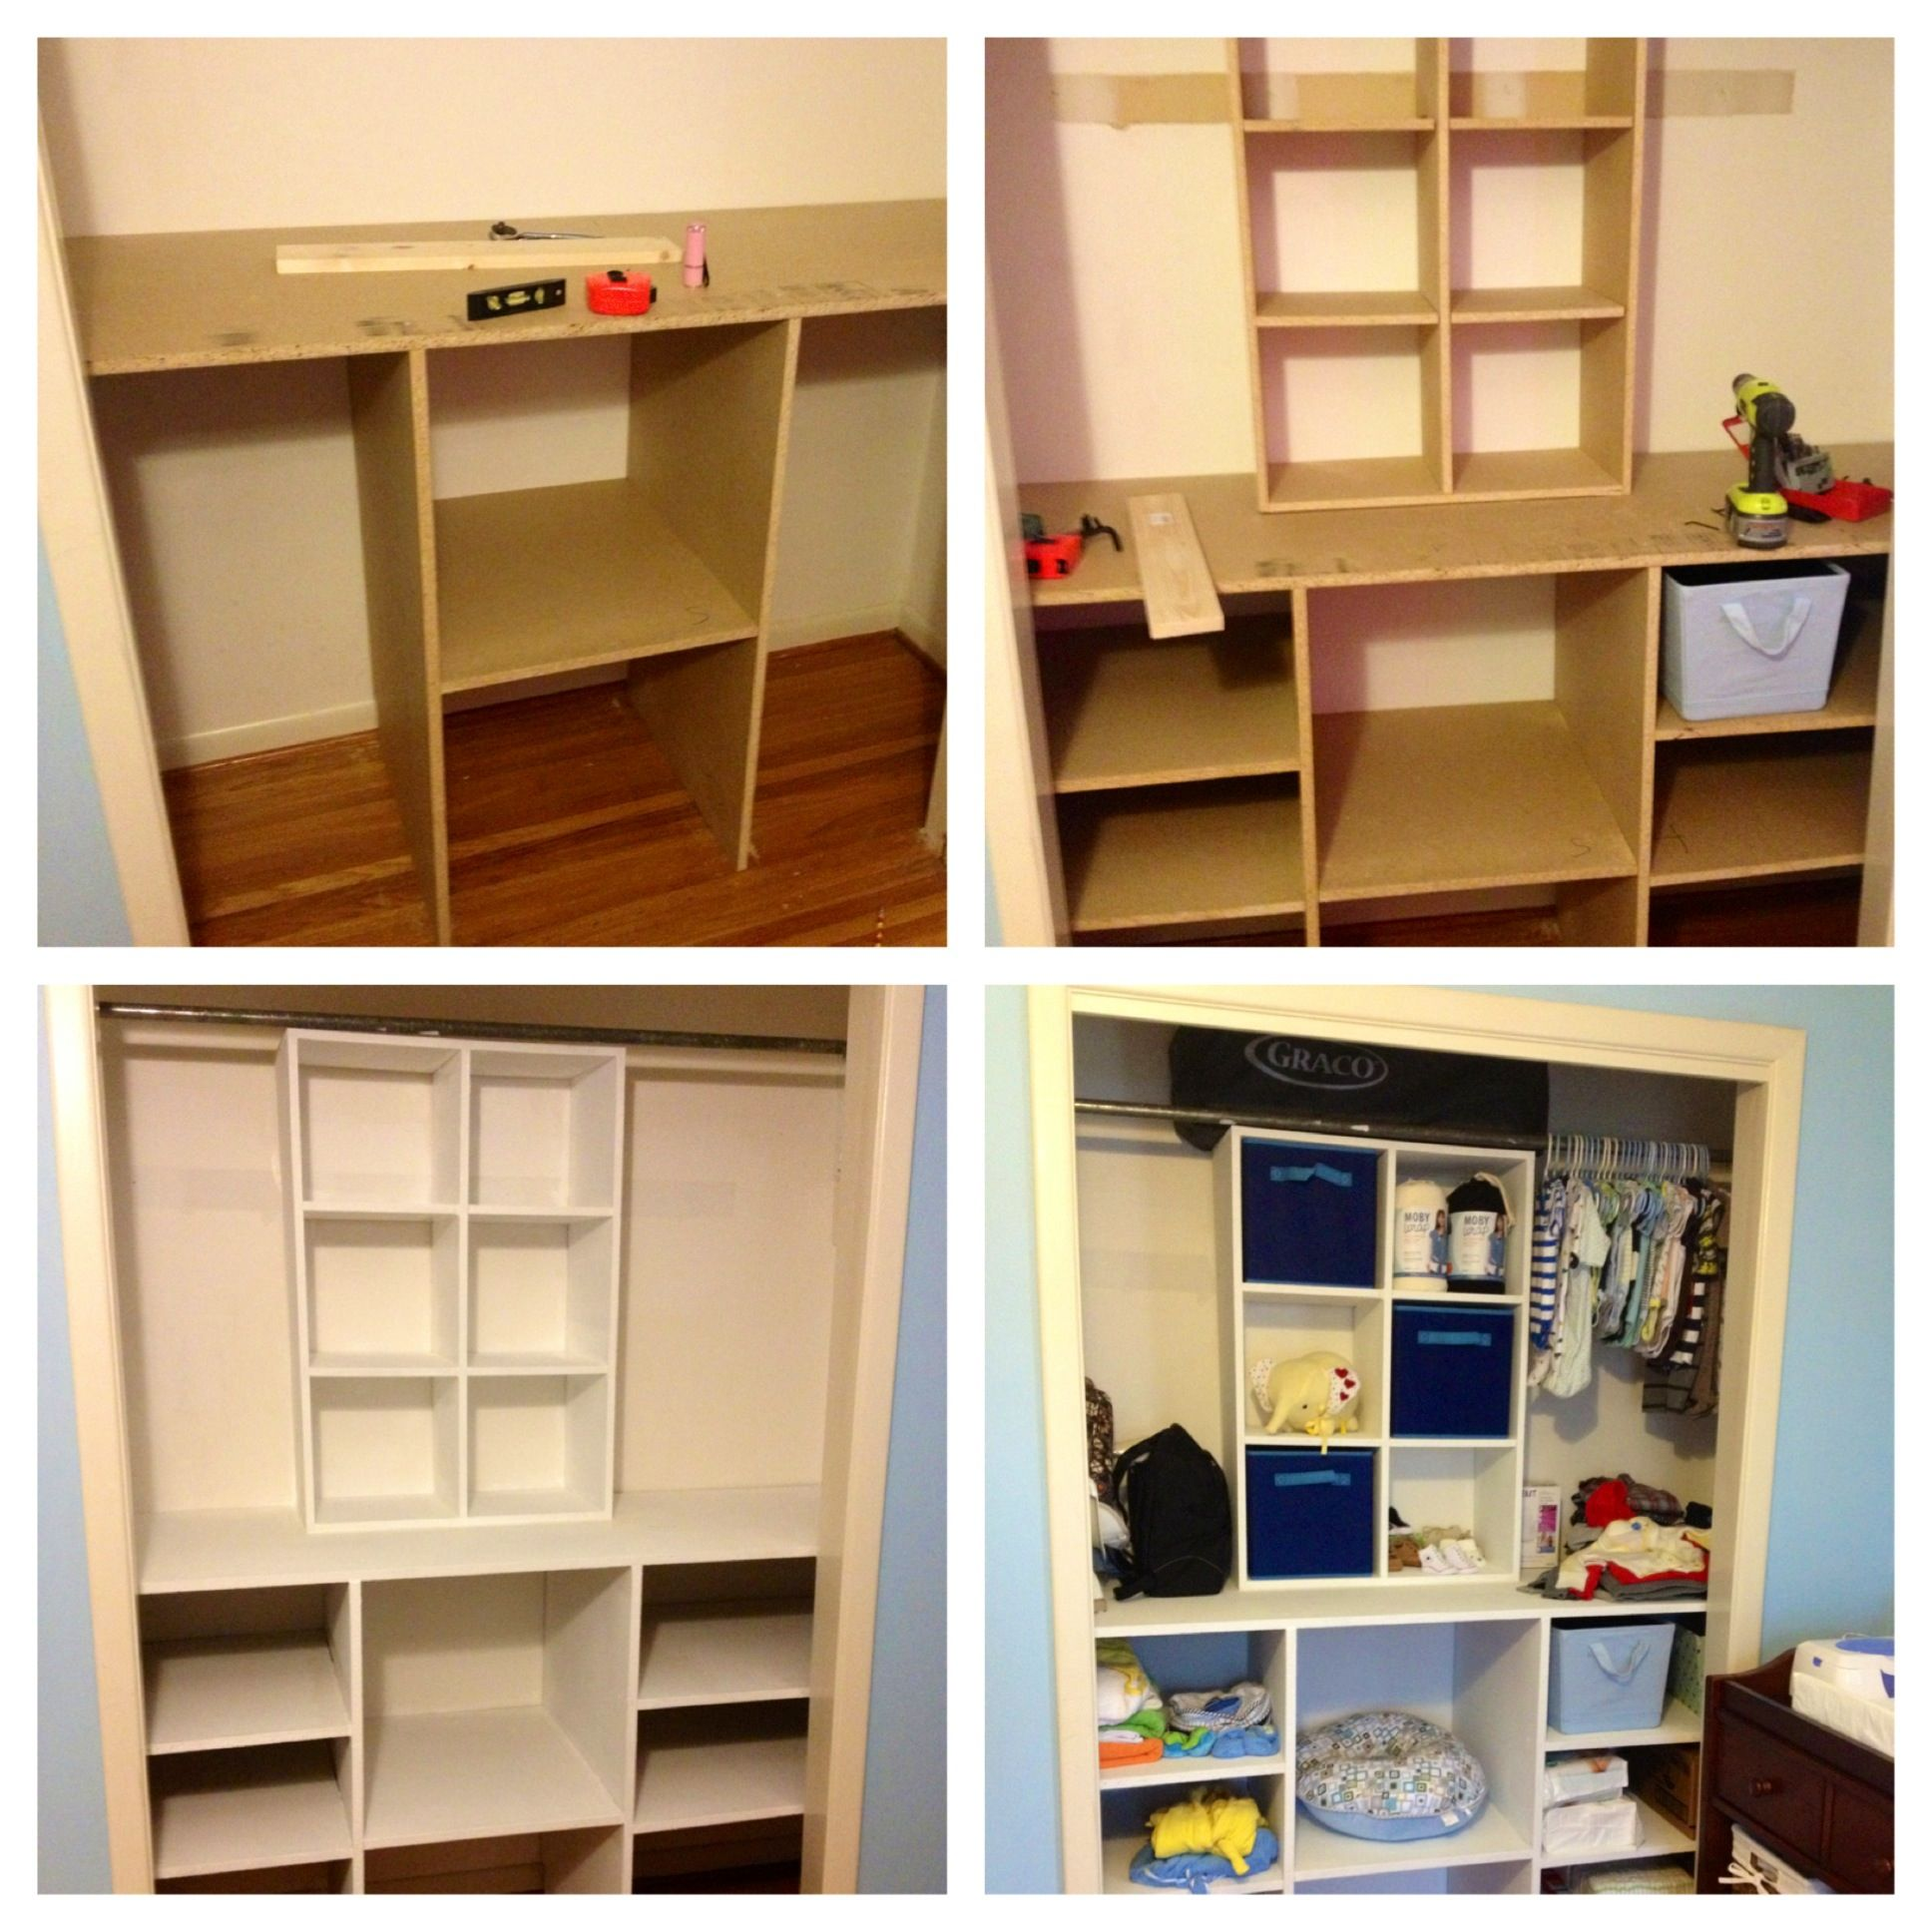 Diy baby closet organizer diy closetorganizer organization house pinterest diy baby - Diy closets for small spaces model ...